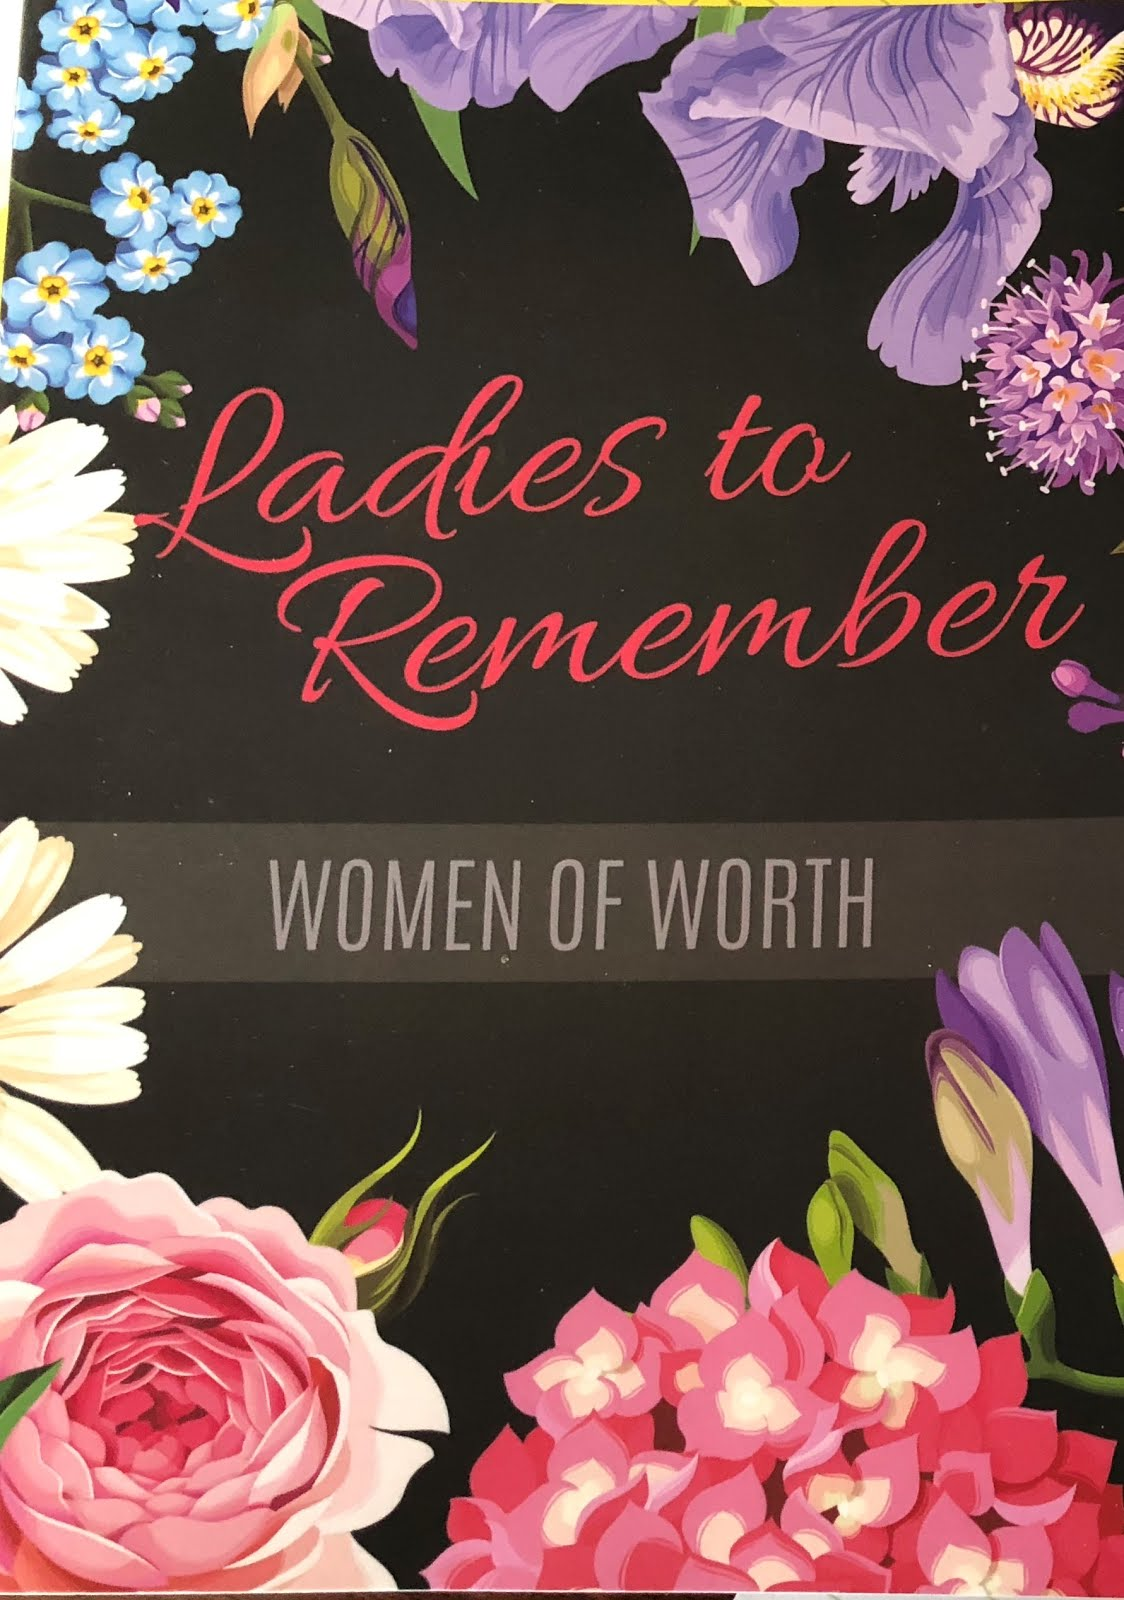 Ladies to Remember